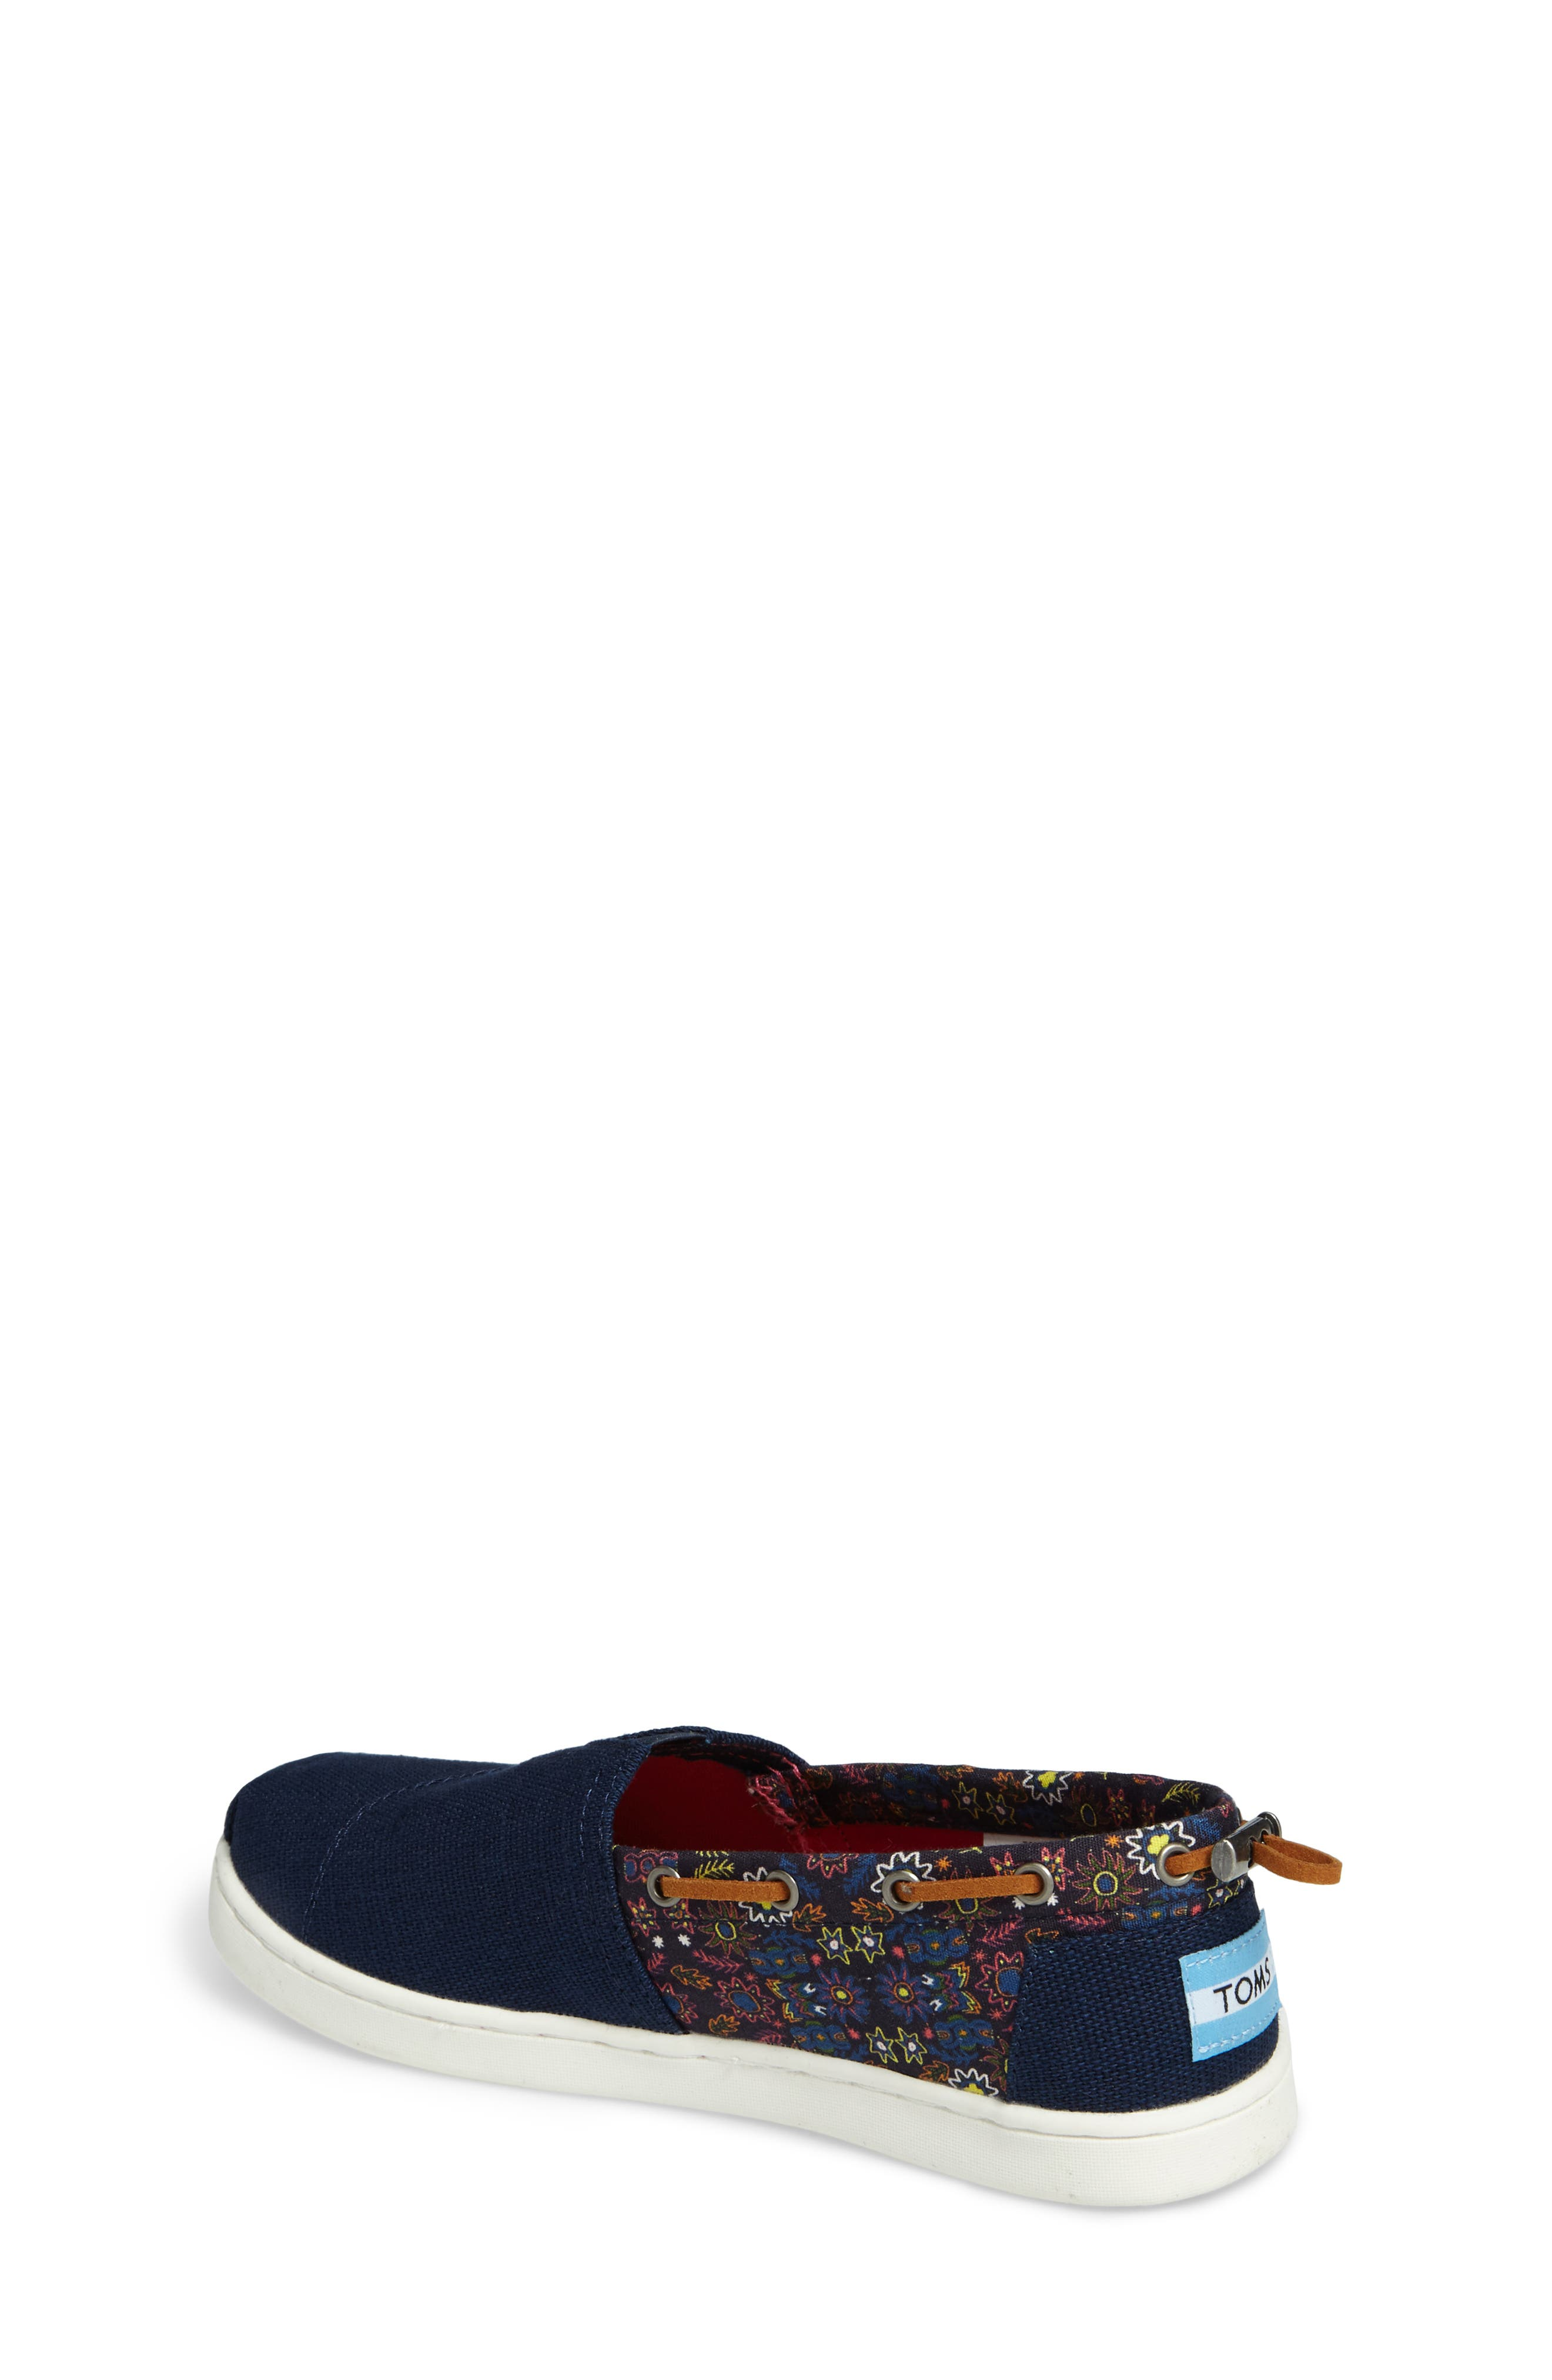 Bimini Slip-On,                             Alternate thumbnail 2, color,                             465